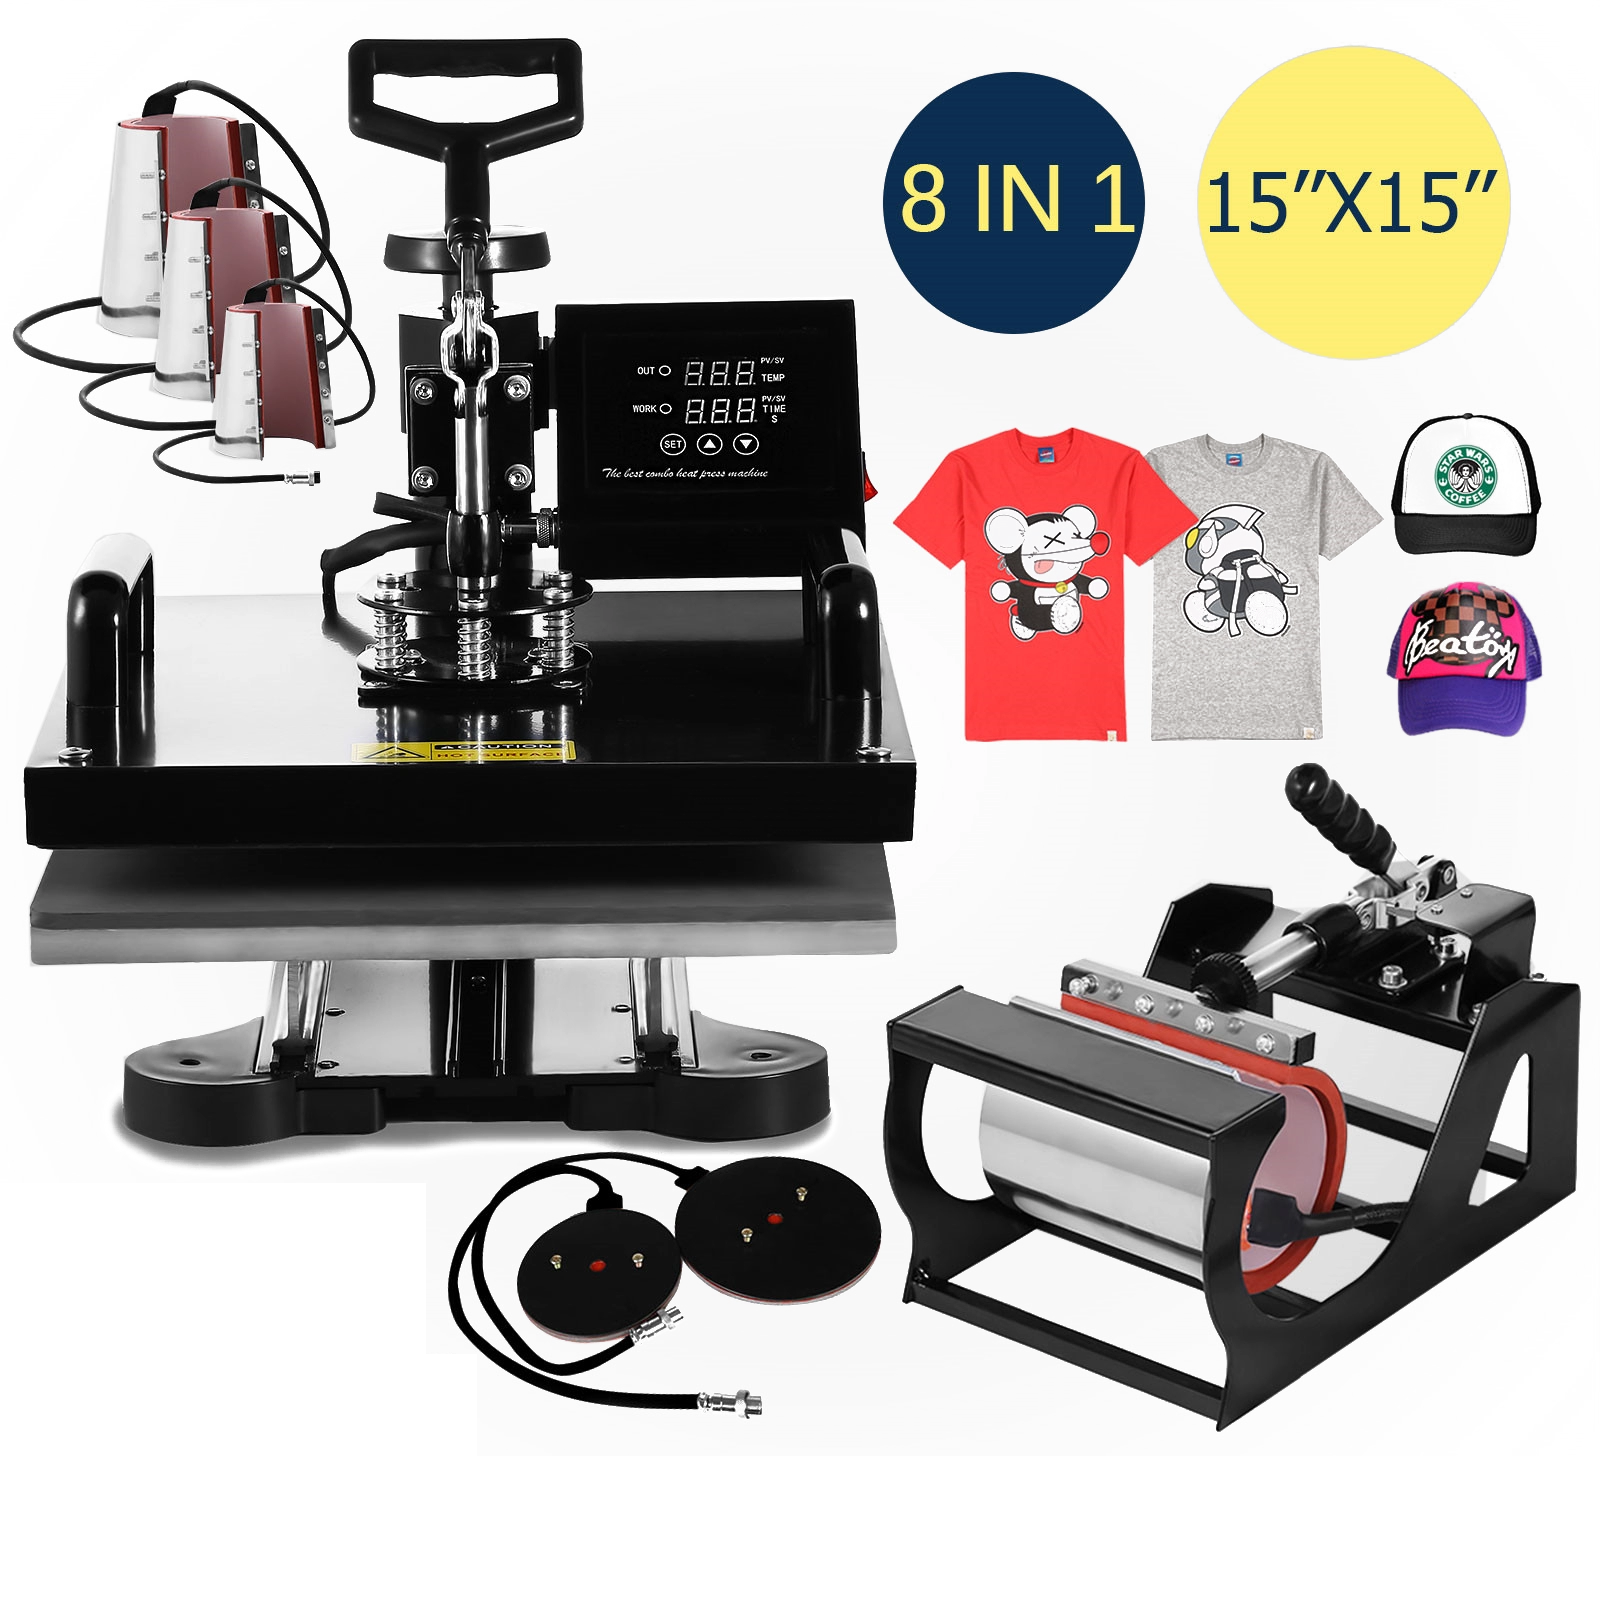 Mesin Tekan Transfer Sublimasi Multifungsi 8 In 1 3d Mesin Press Panas untuk T-shirt Mug Hat Cap